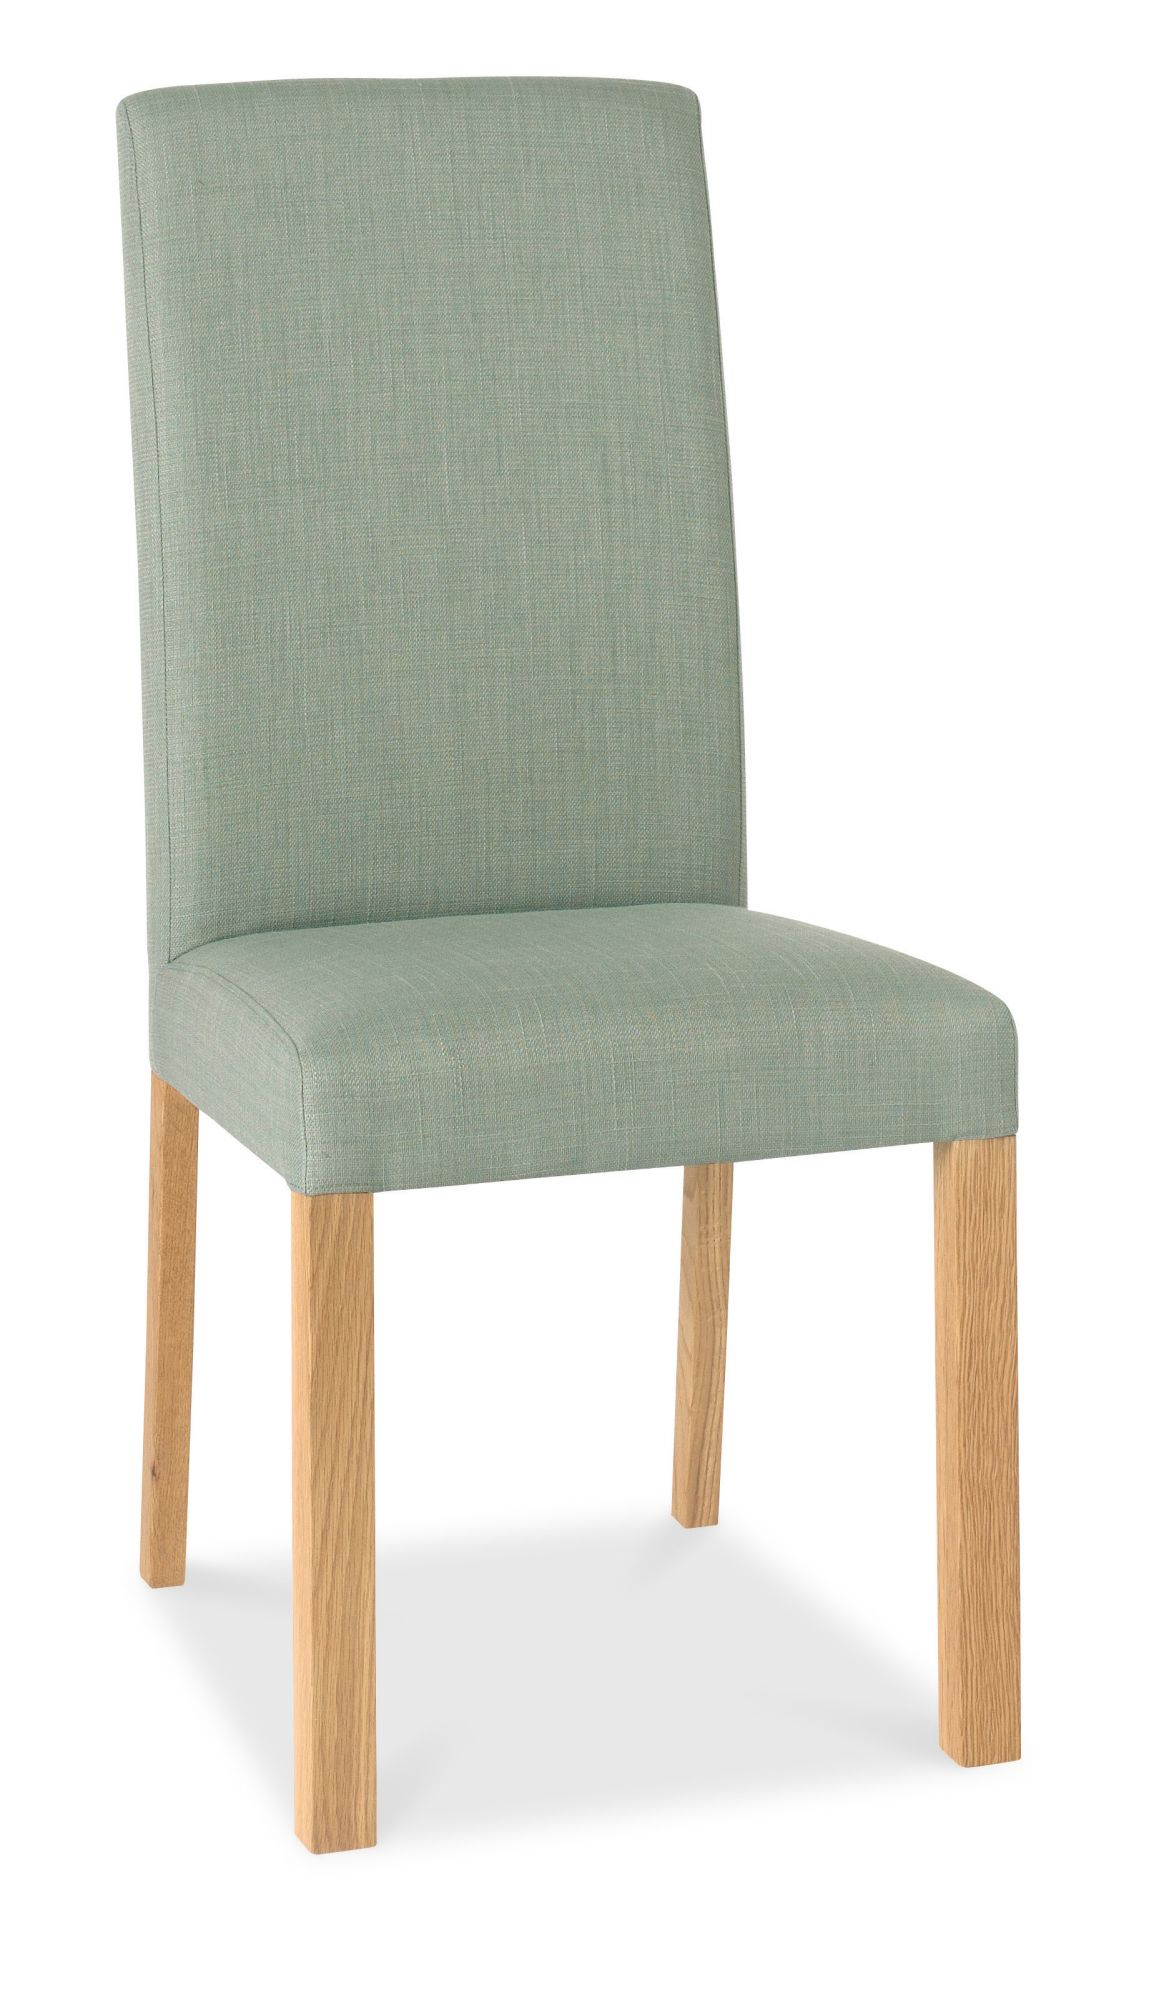 https://www.firstfurniture.co.uk/pub/media/catalog/product/1/9/19_2_76.jpg